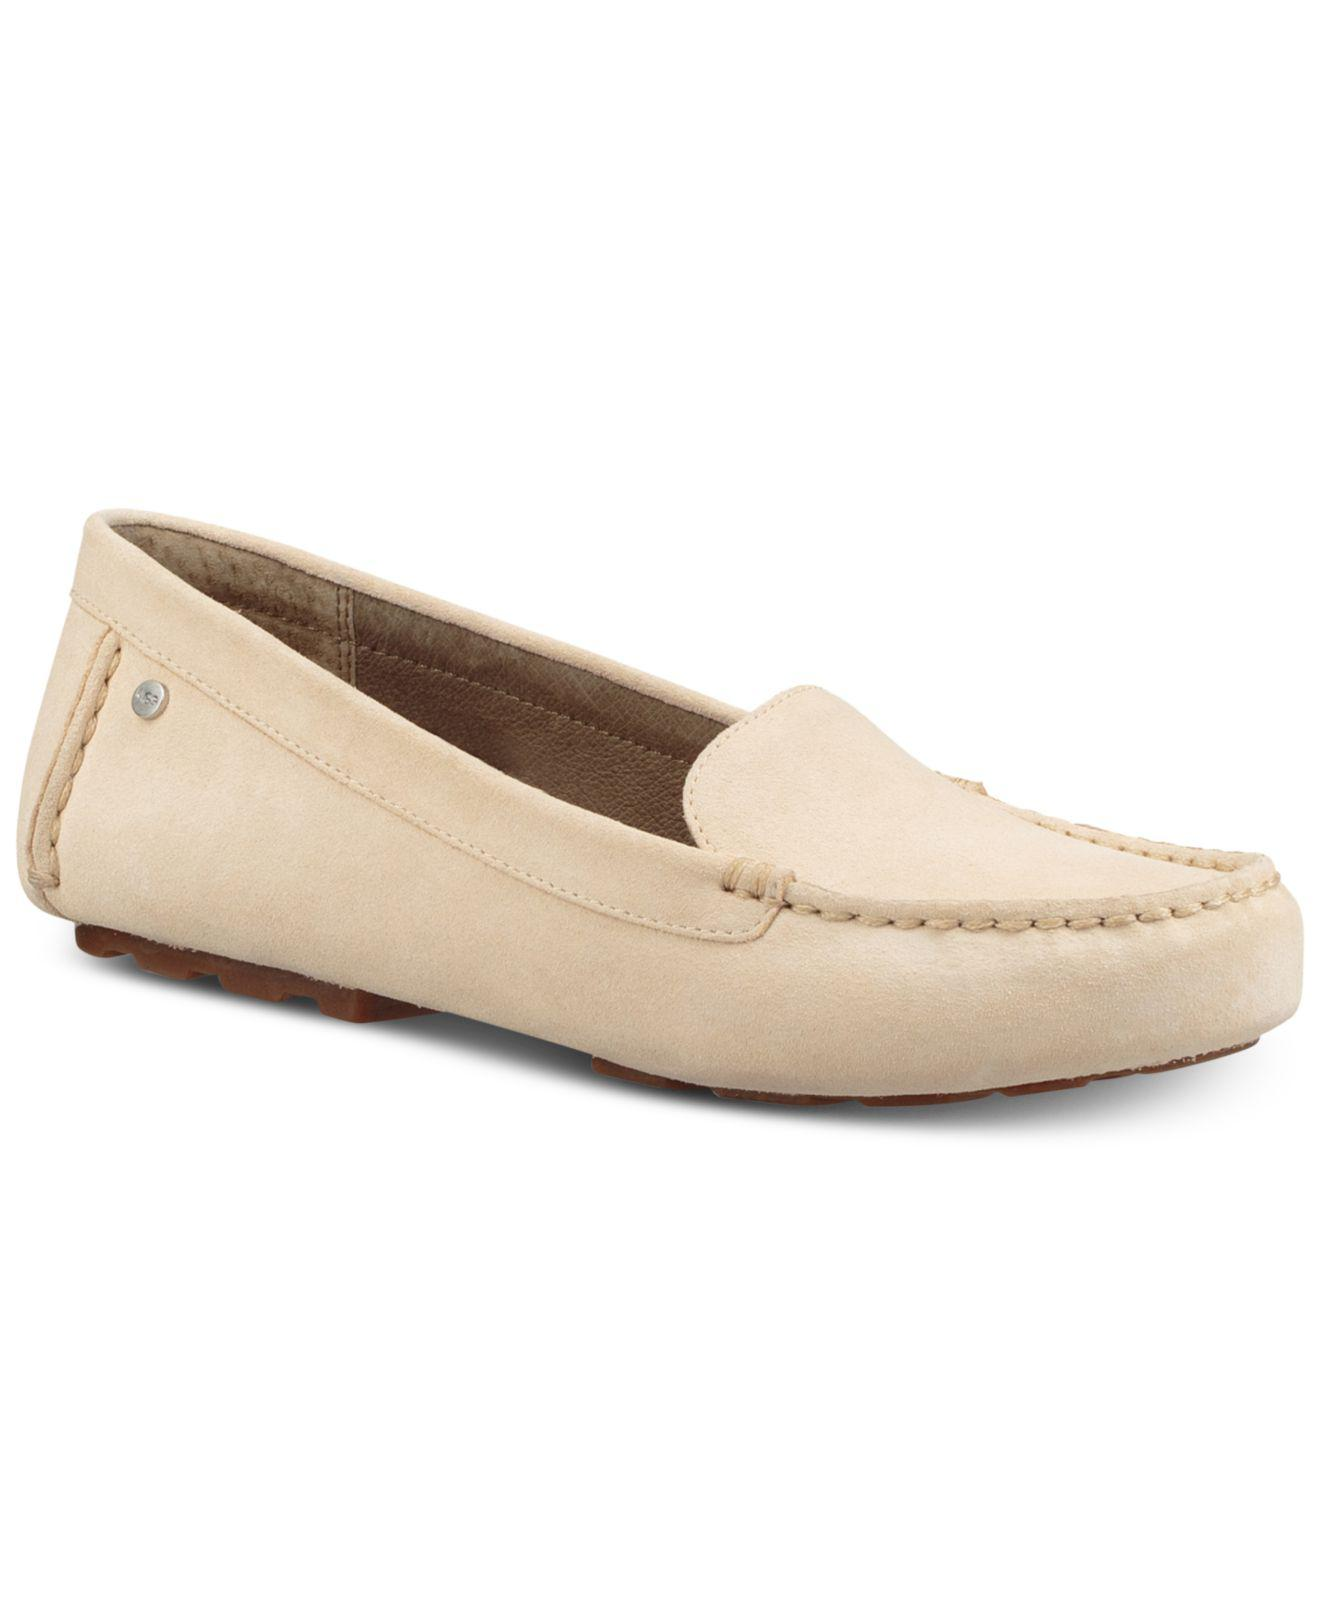 UGG Women's Milana Unlined Loafers